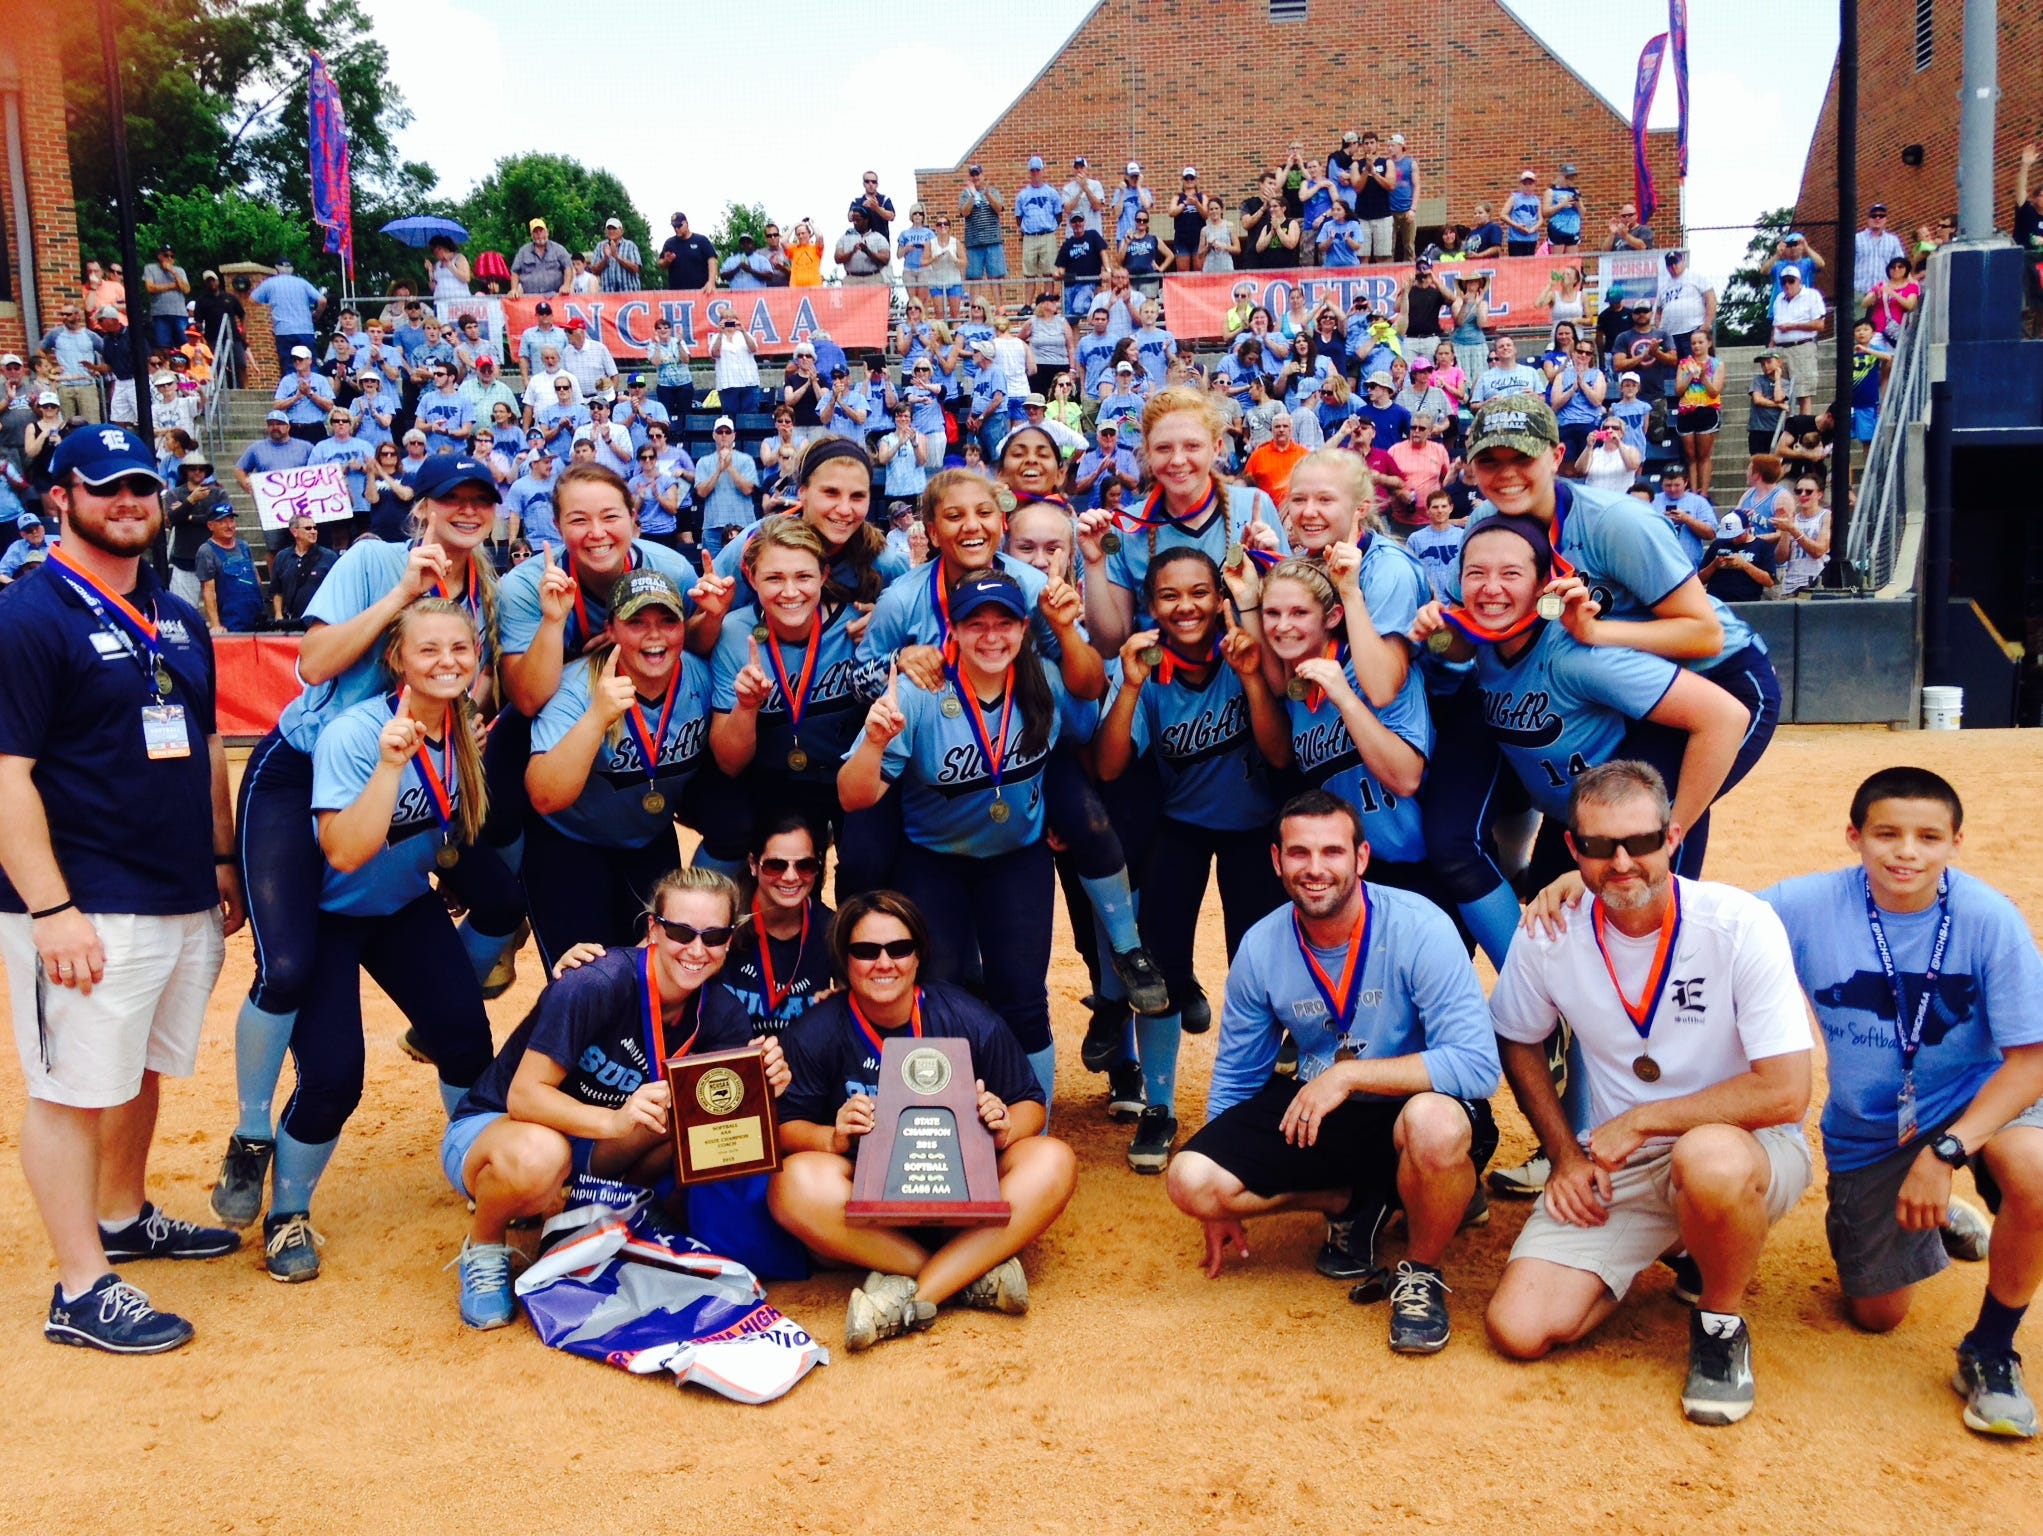 Enka won the NCHSAA 3-A softball championship on June 6 in Greensboro.